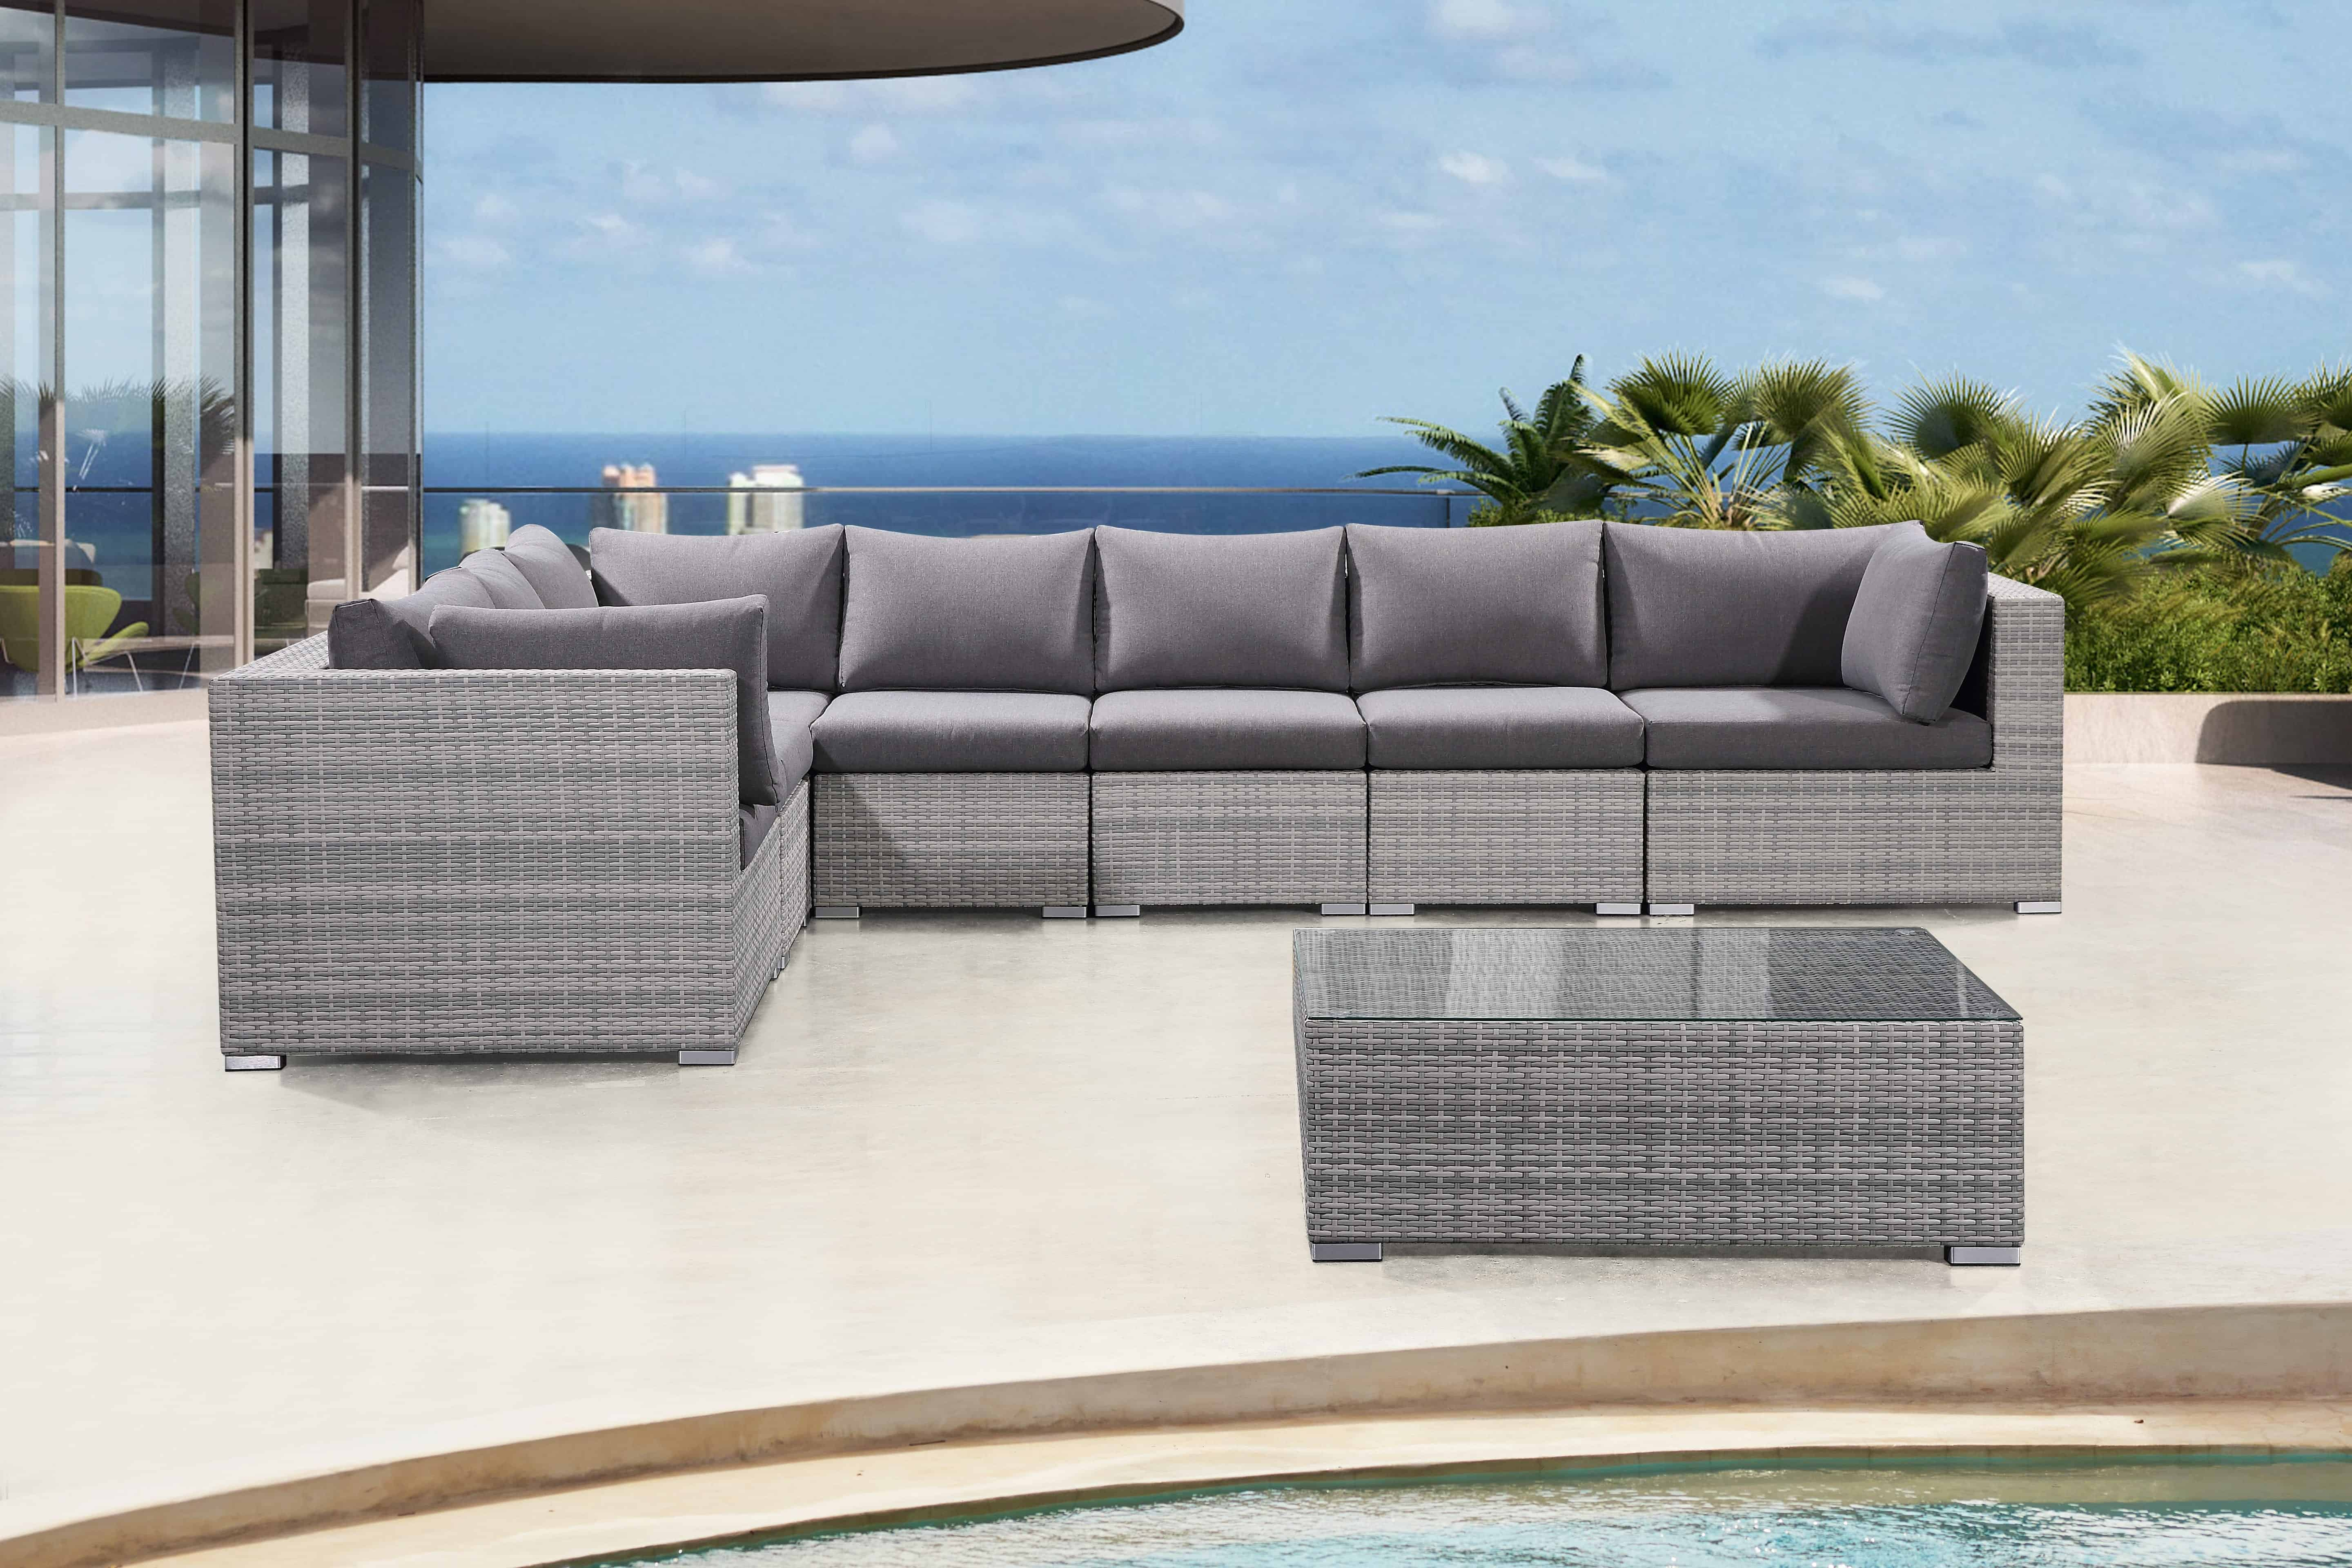 Patio Furniture Sale Mississauga Premium Quality Outdoor Patio Furniture Velago Patio Furniture